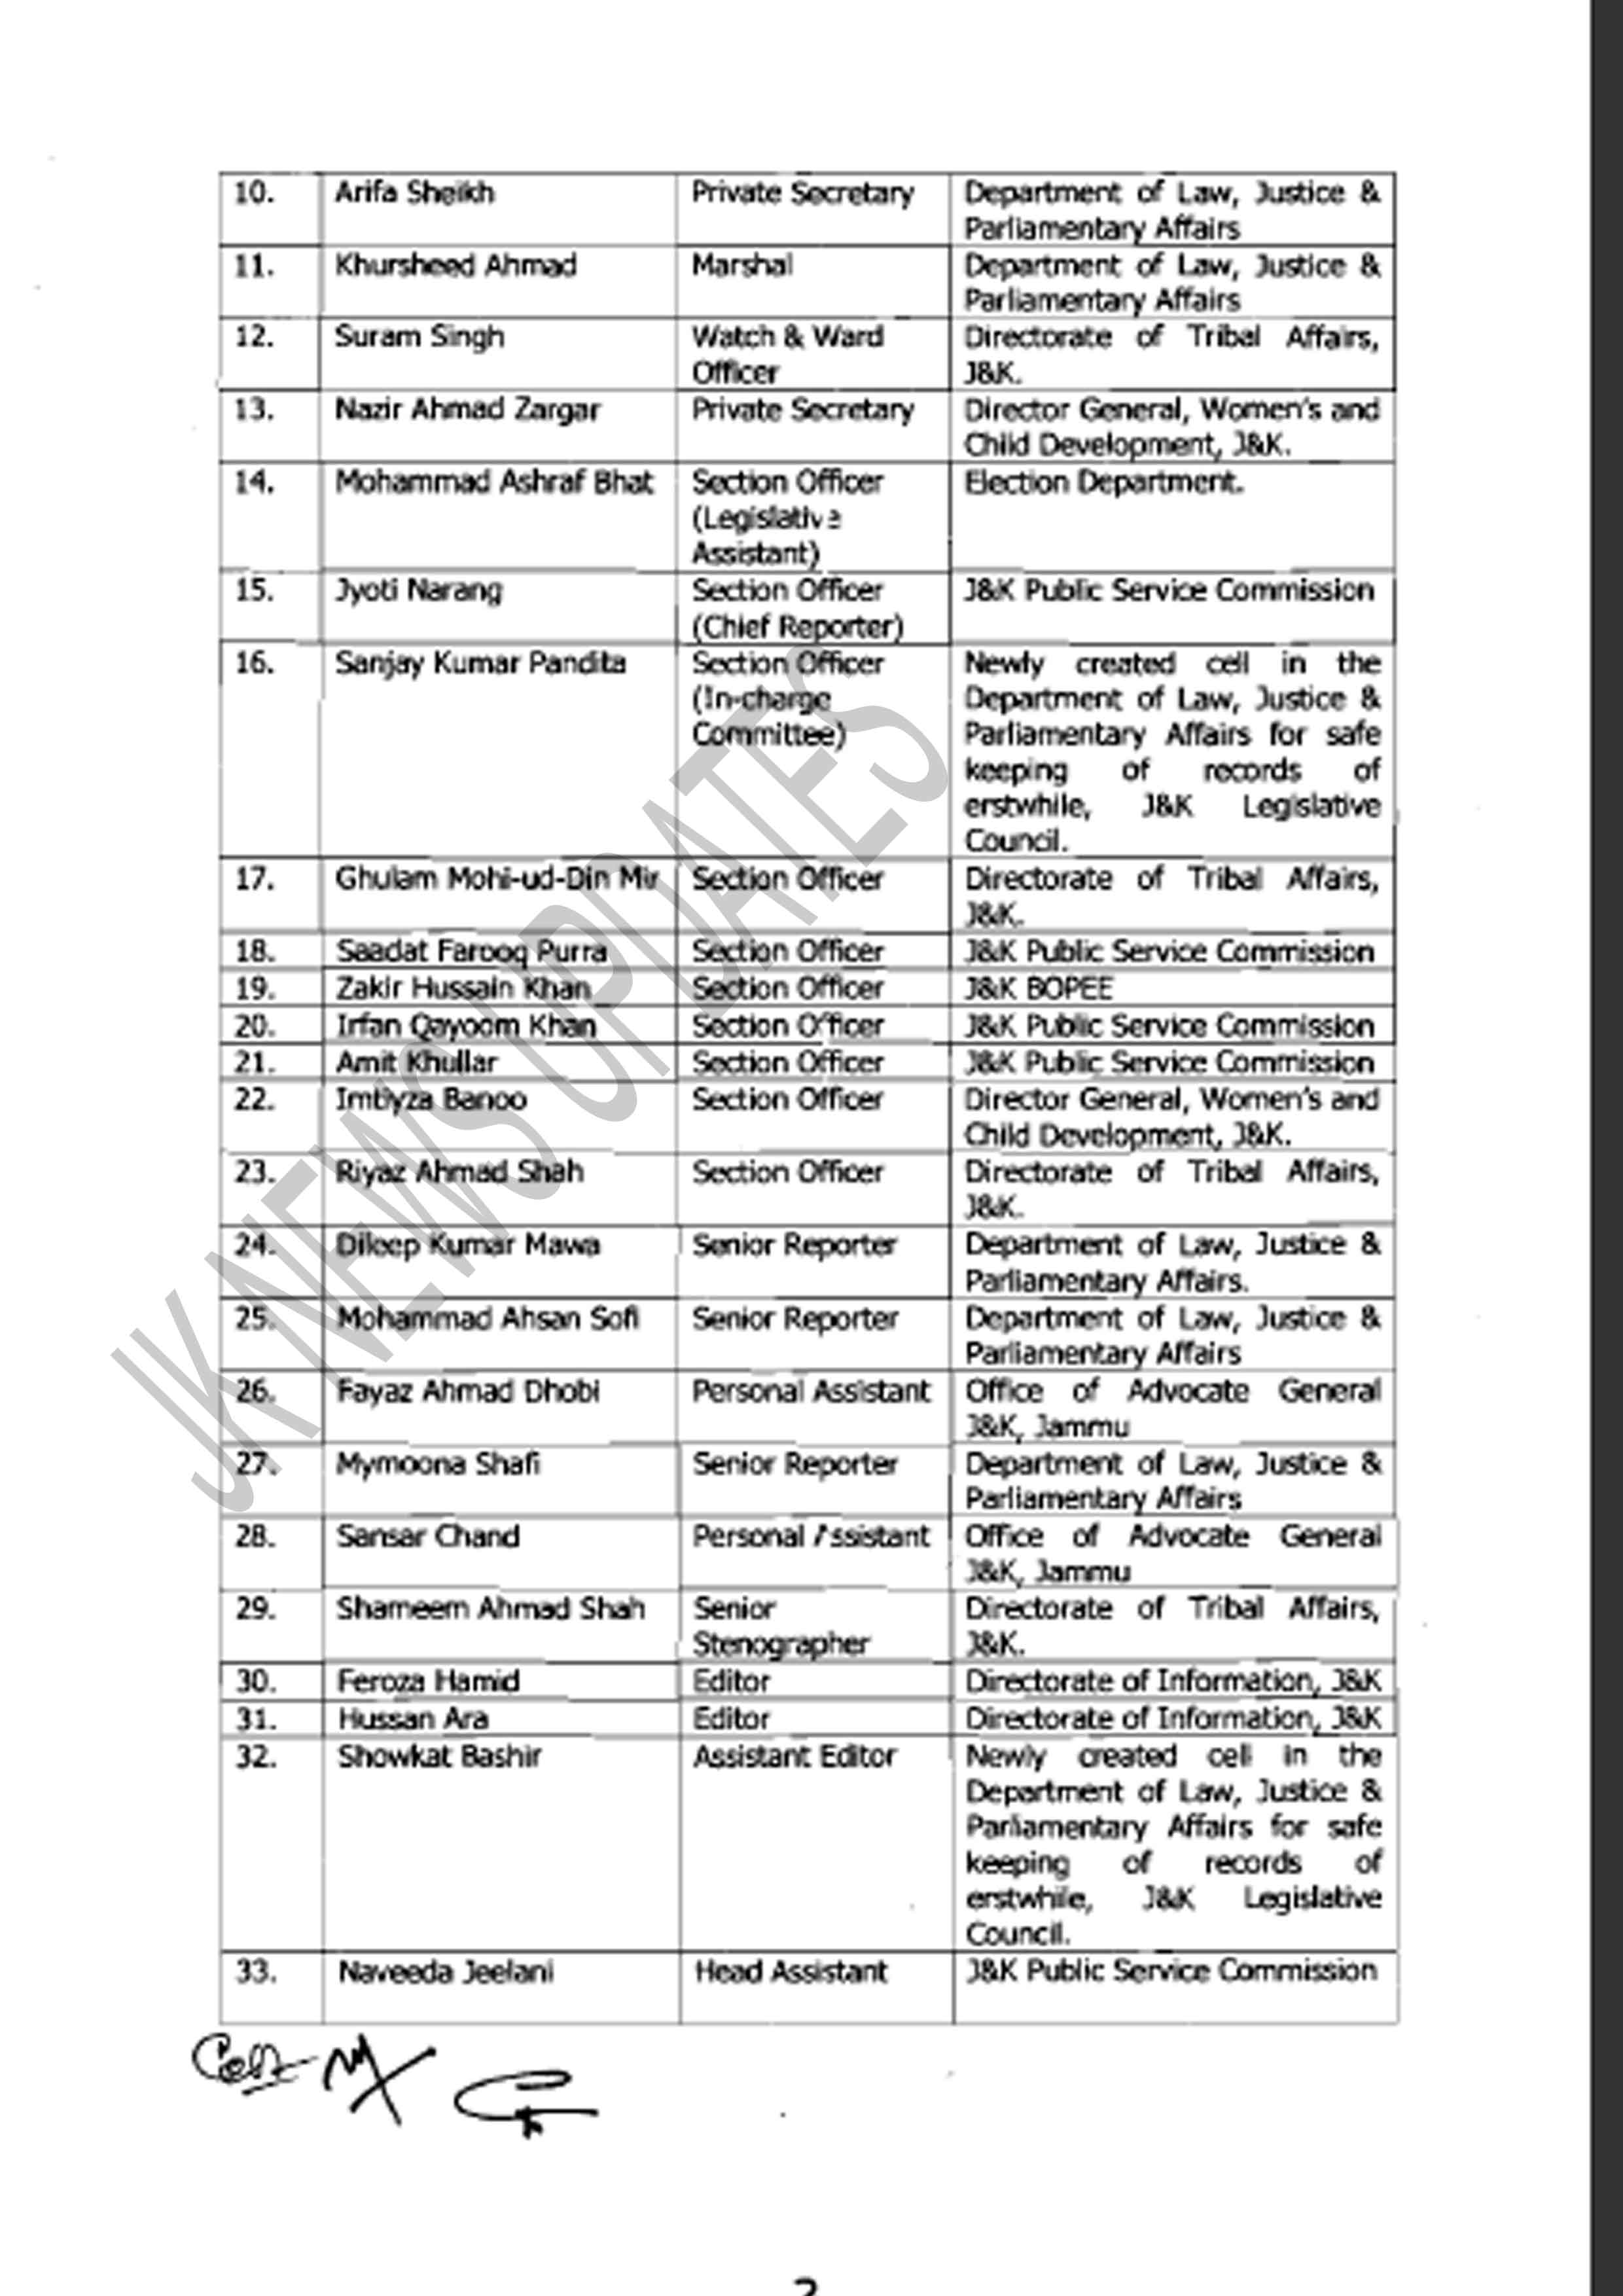 Utilizing the services of officers/officials of the erstwhile Jammu and Kashmir Legislative Council Secretariat in different Departments/Organizations